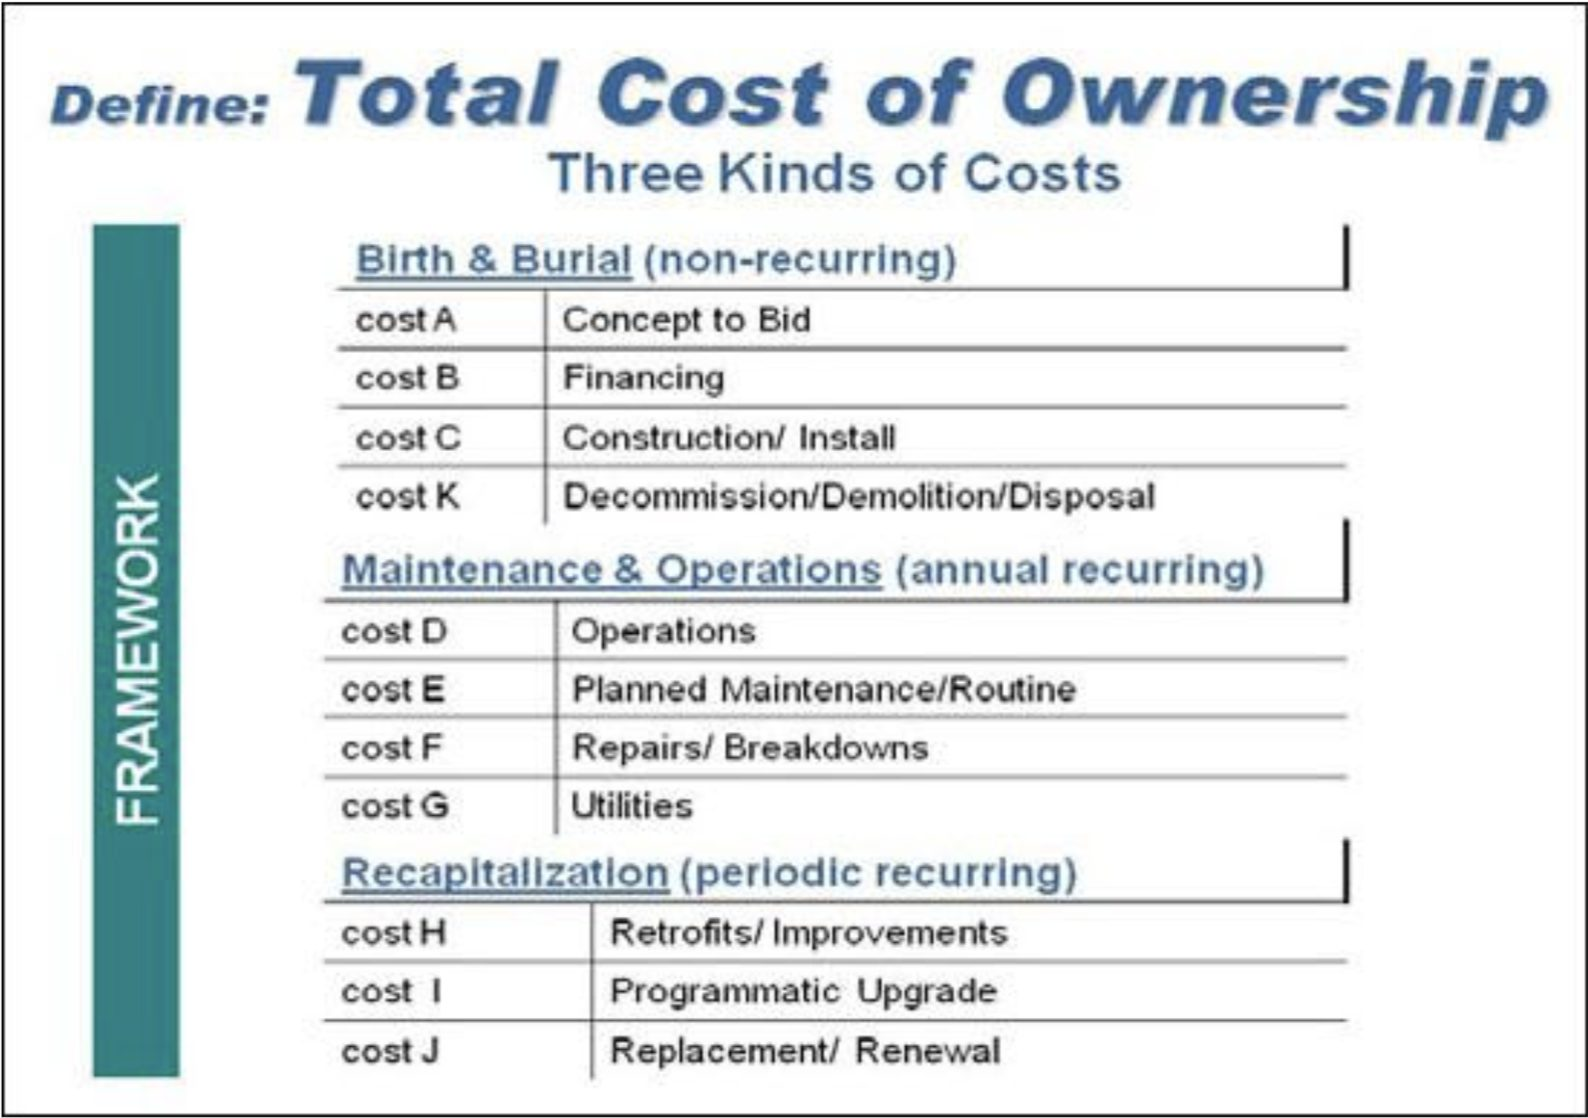 a table showing total cost of ownership